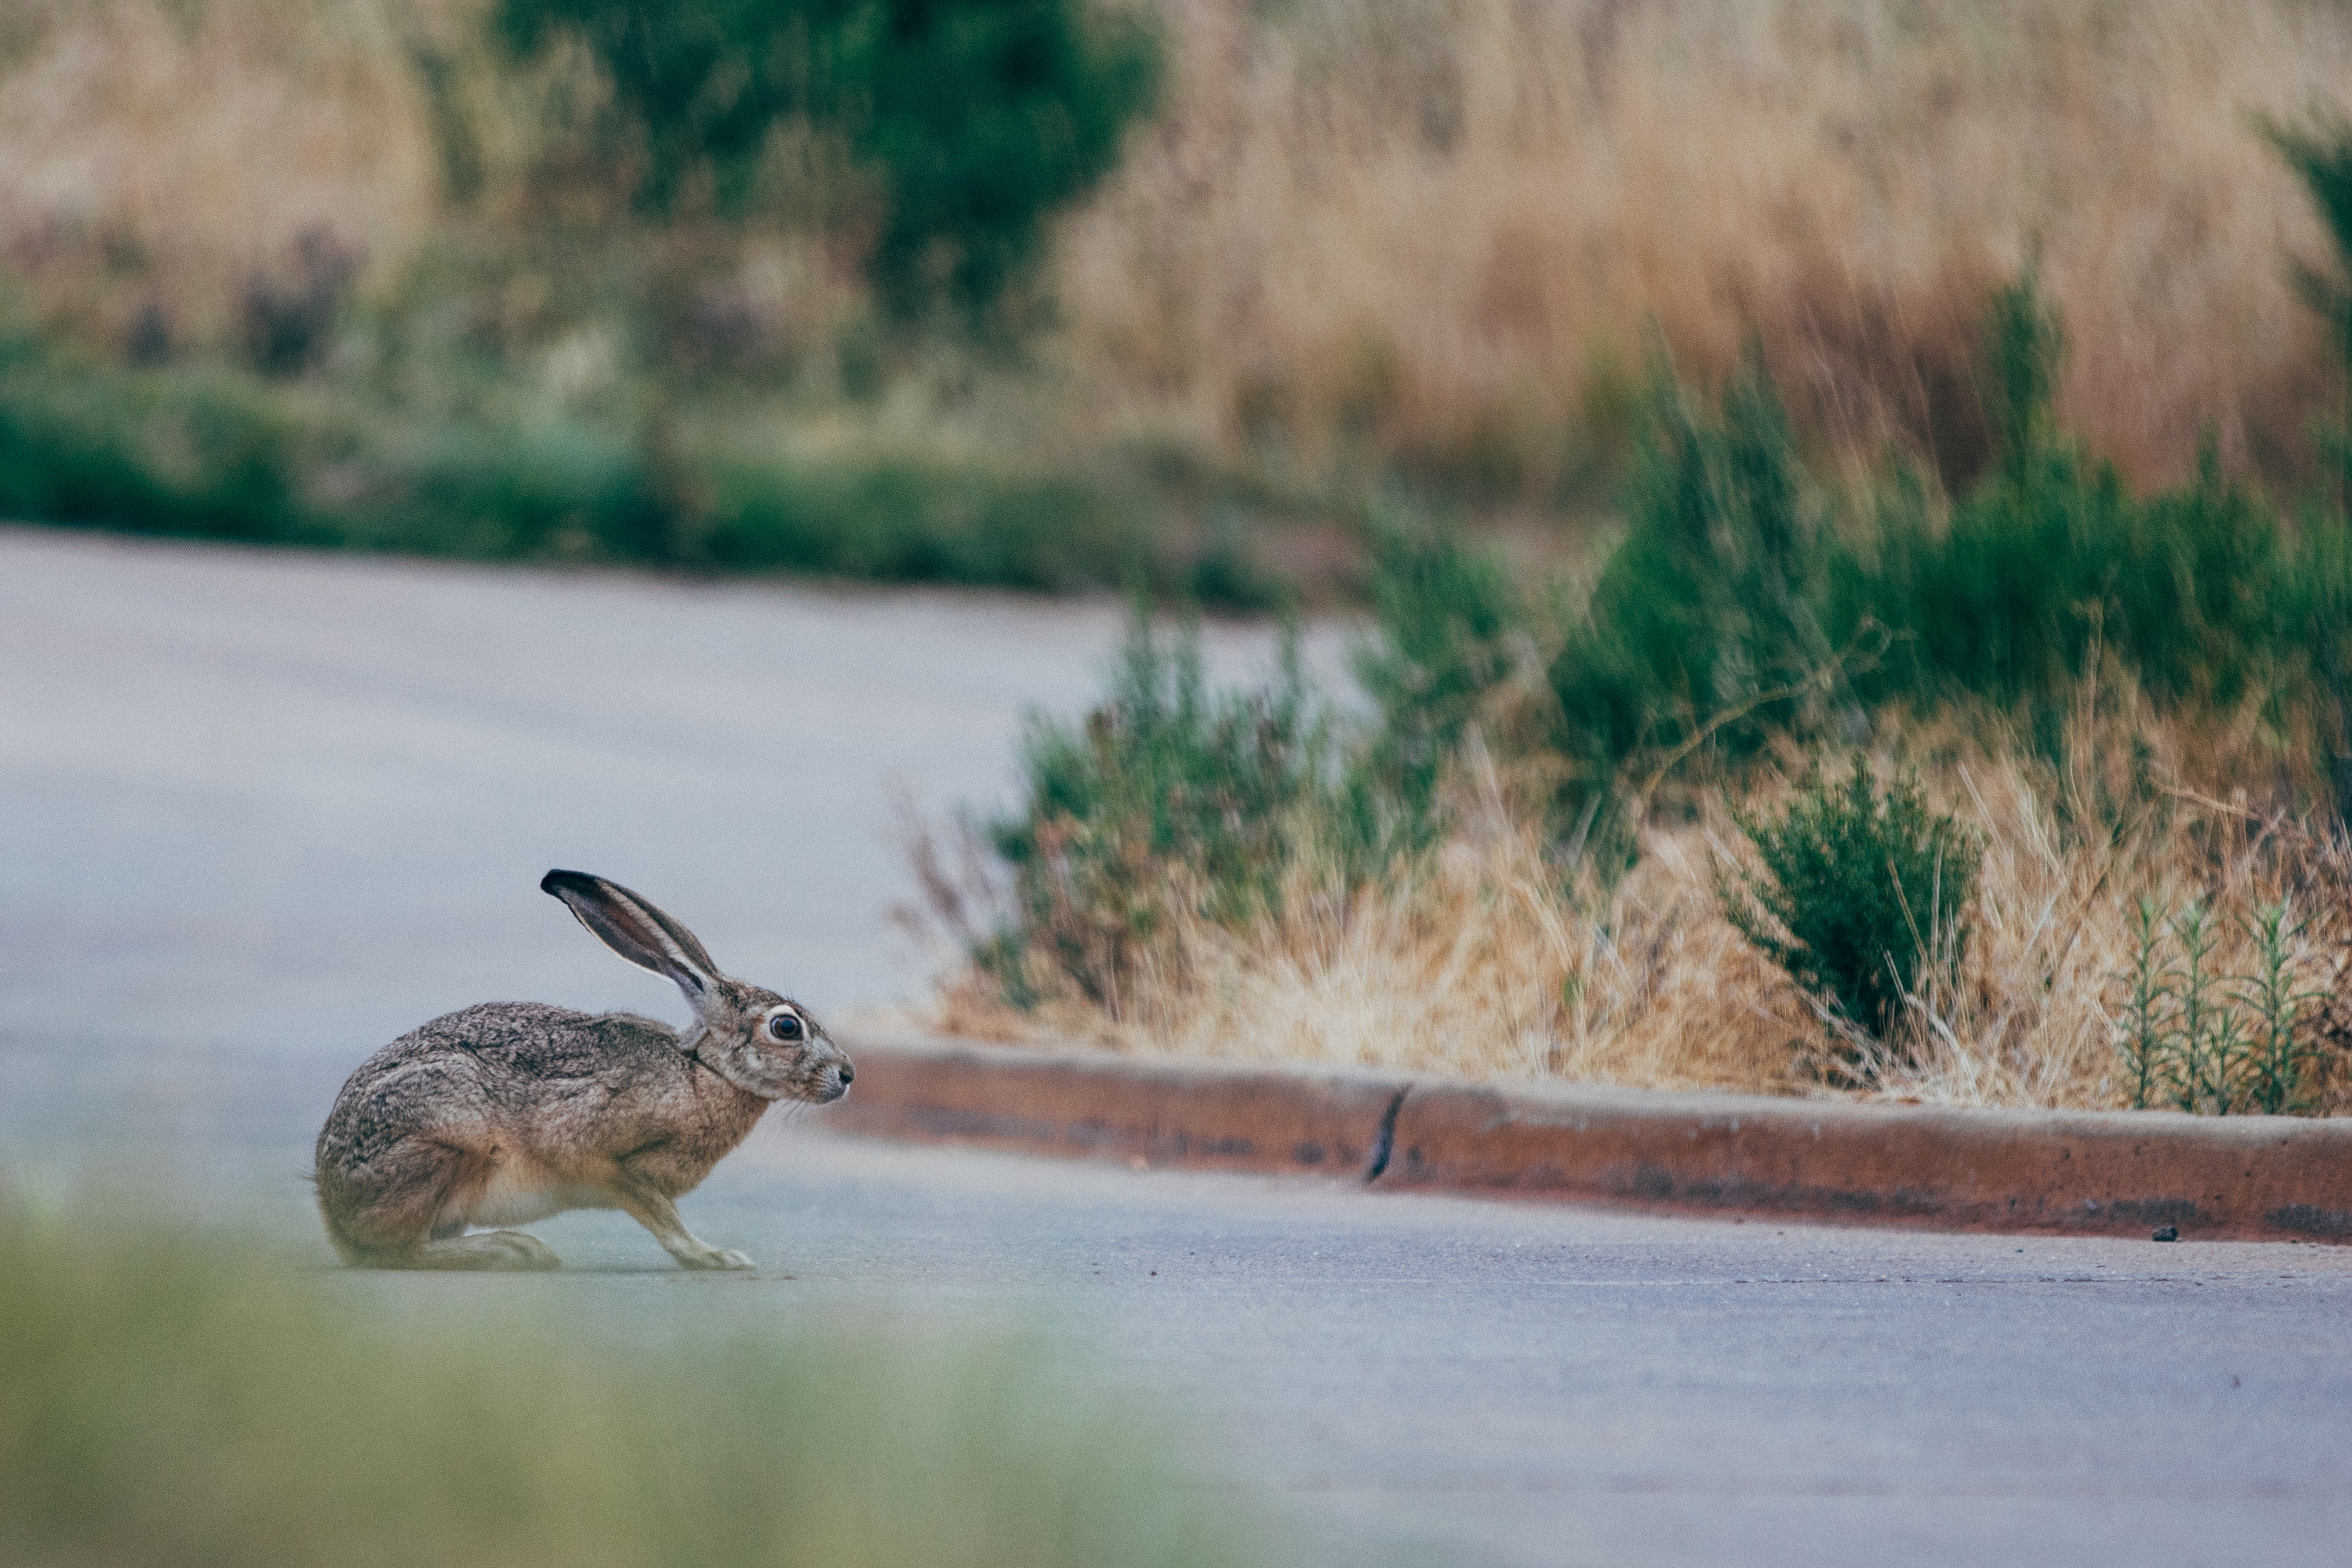 A thin rabbit crossing a street with a grassy curb